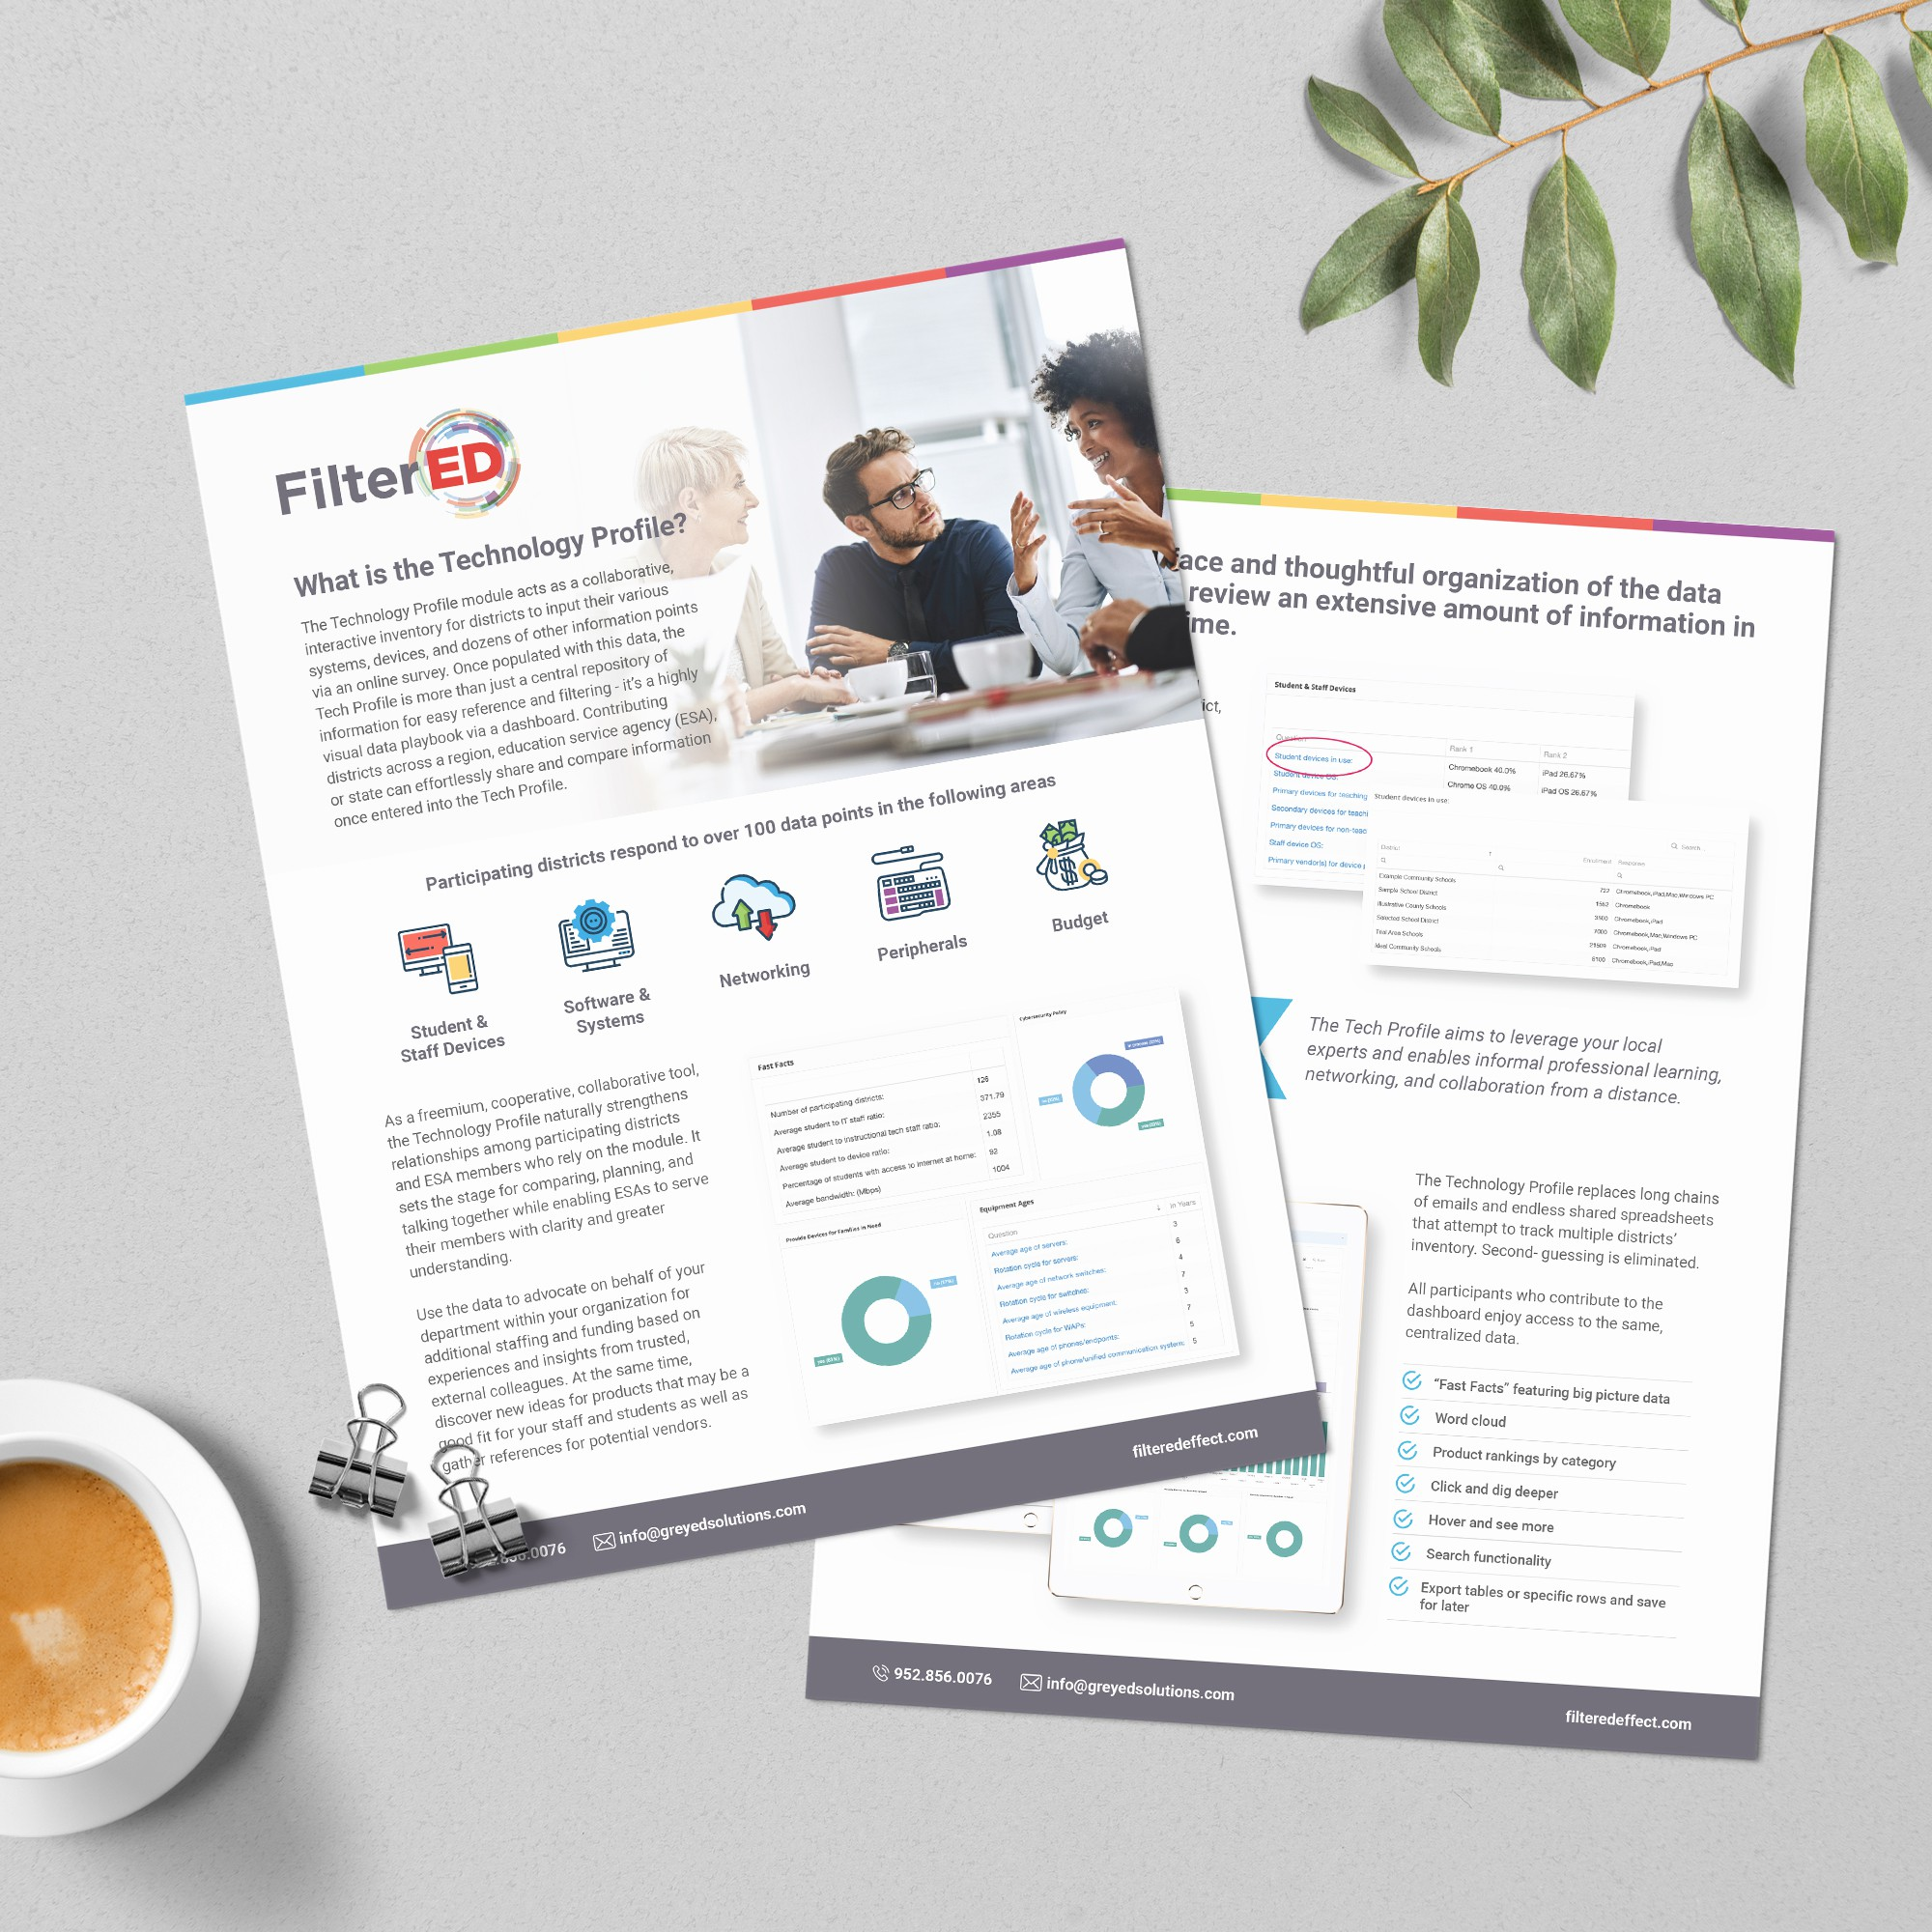 New collateral for expanded product offering